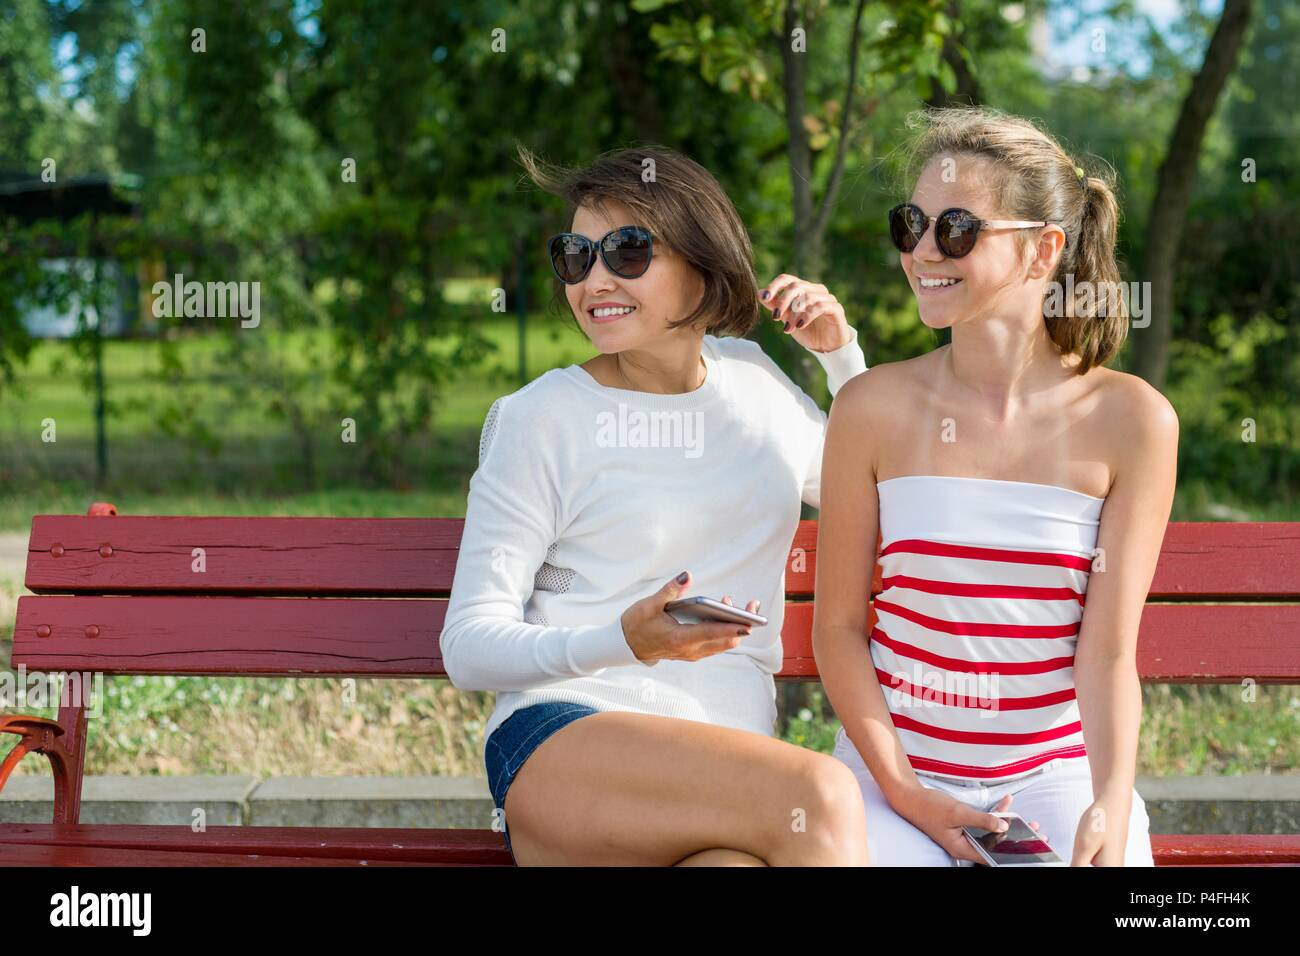 Mother and daughter teenager looking to the side, sitting on a bench in the park. Communication between parent and child. Copy space Stock Photo